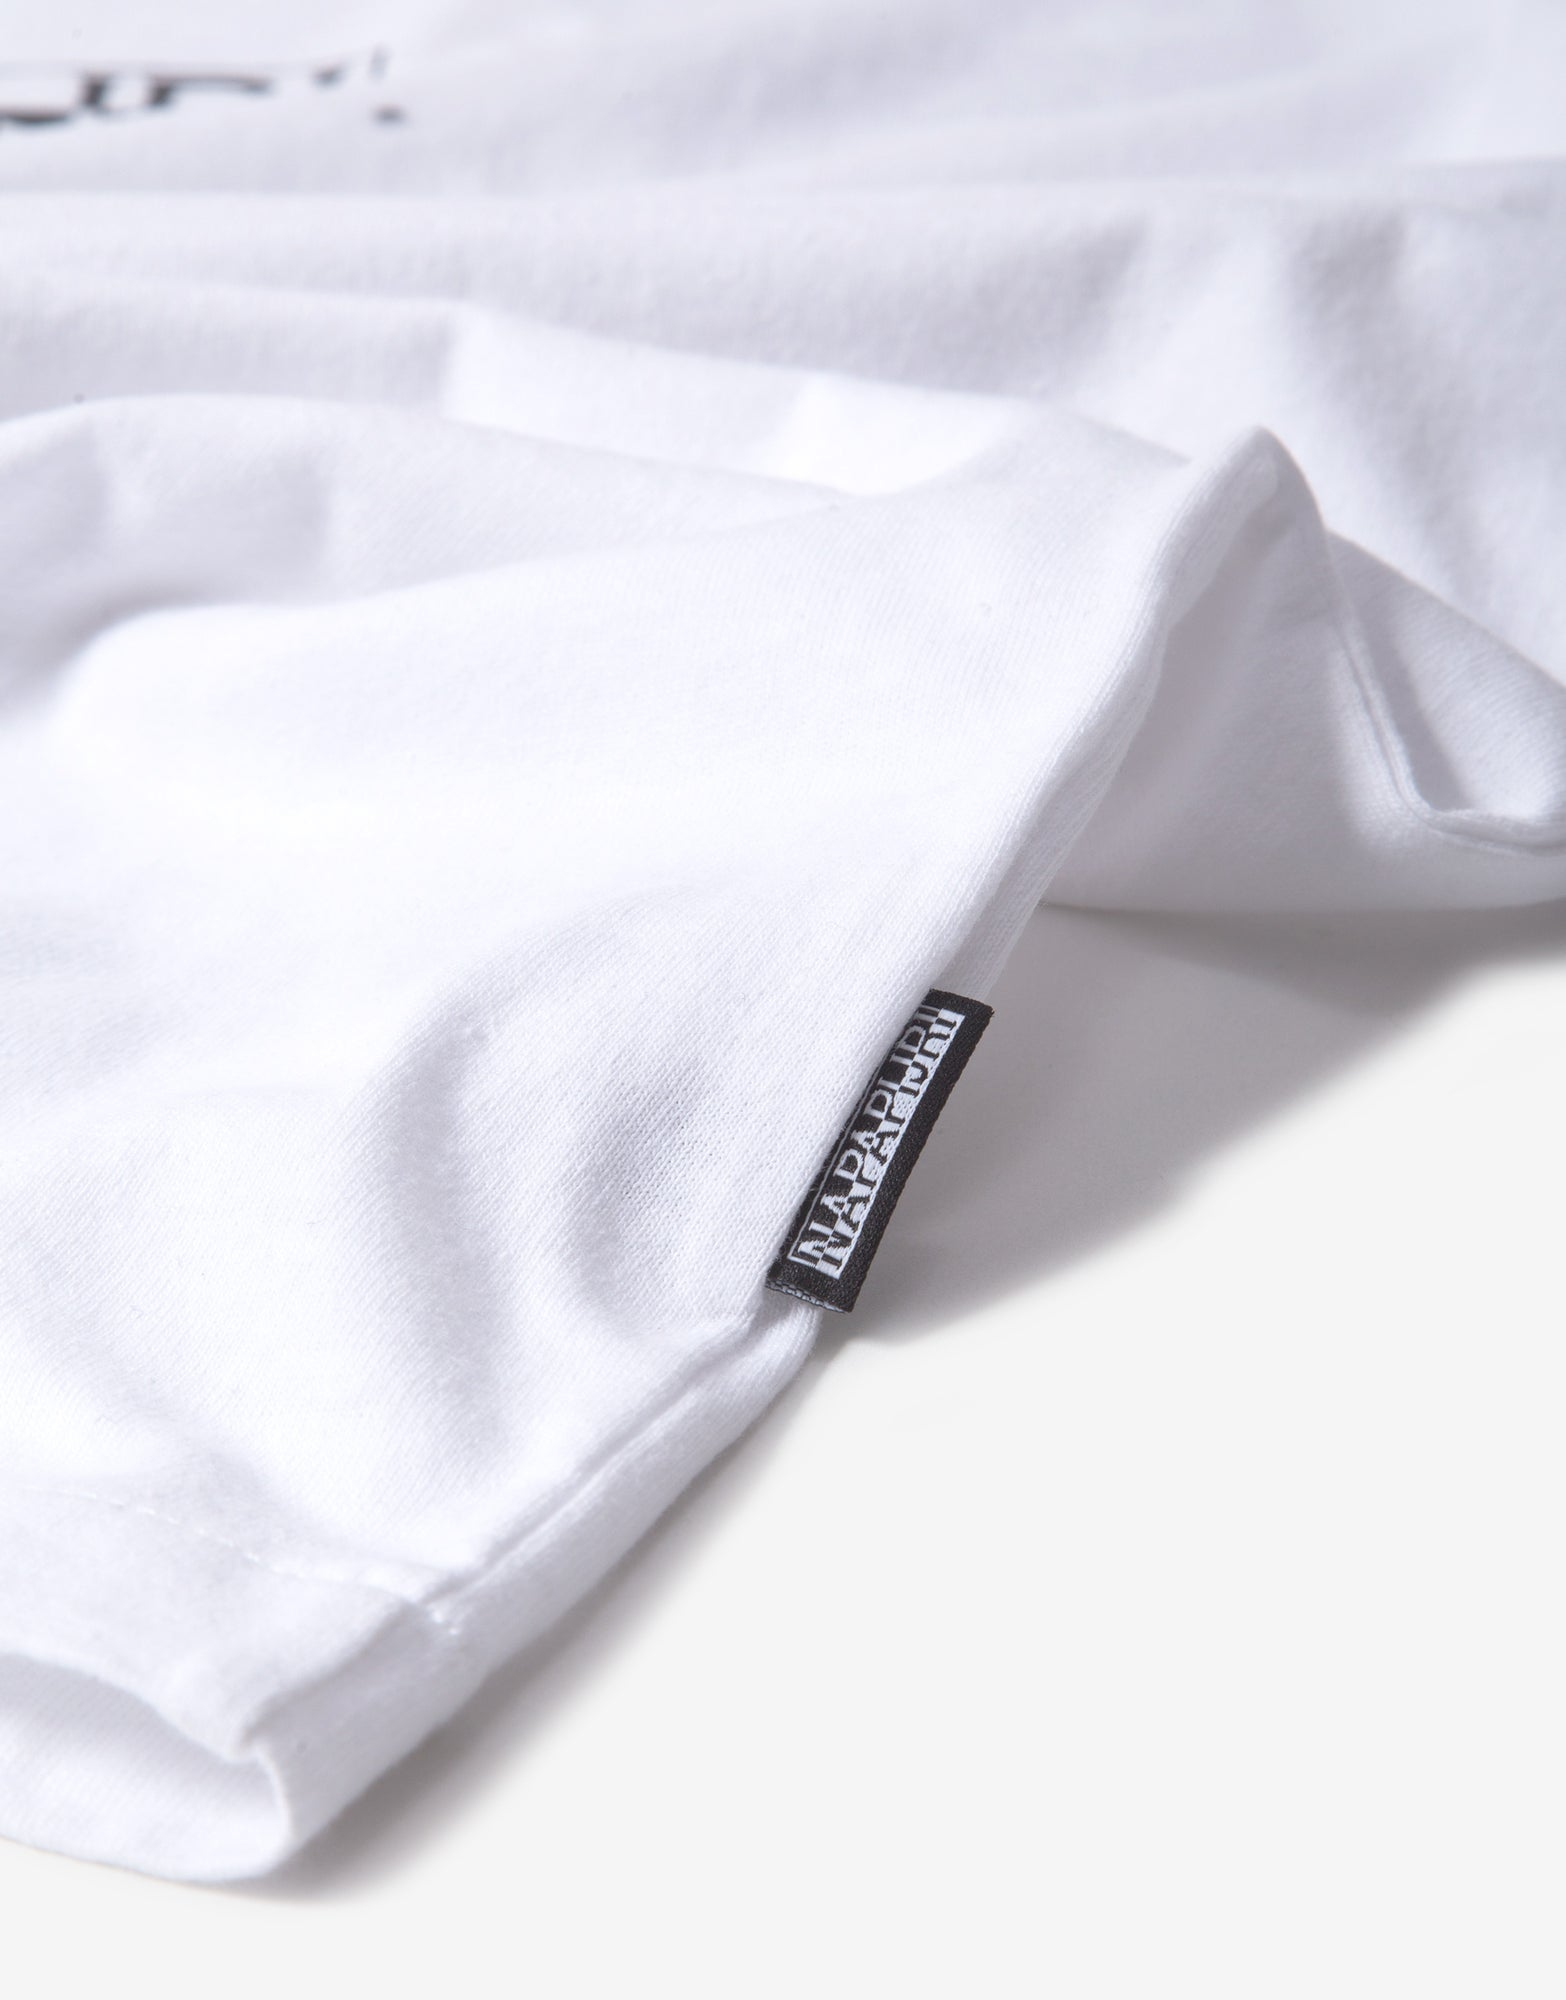 Napapijri S-Box T Shirt - Bright White